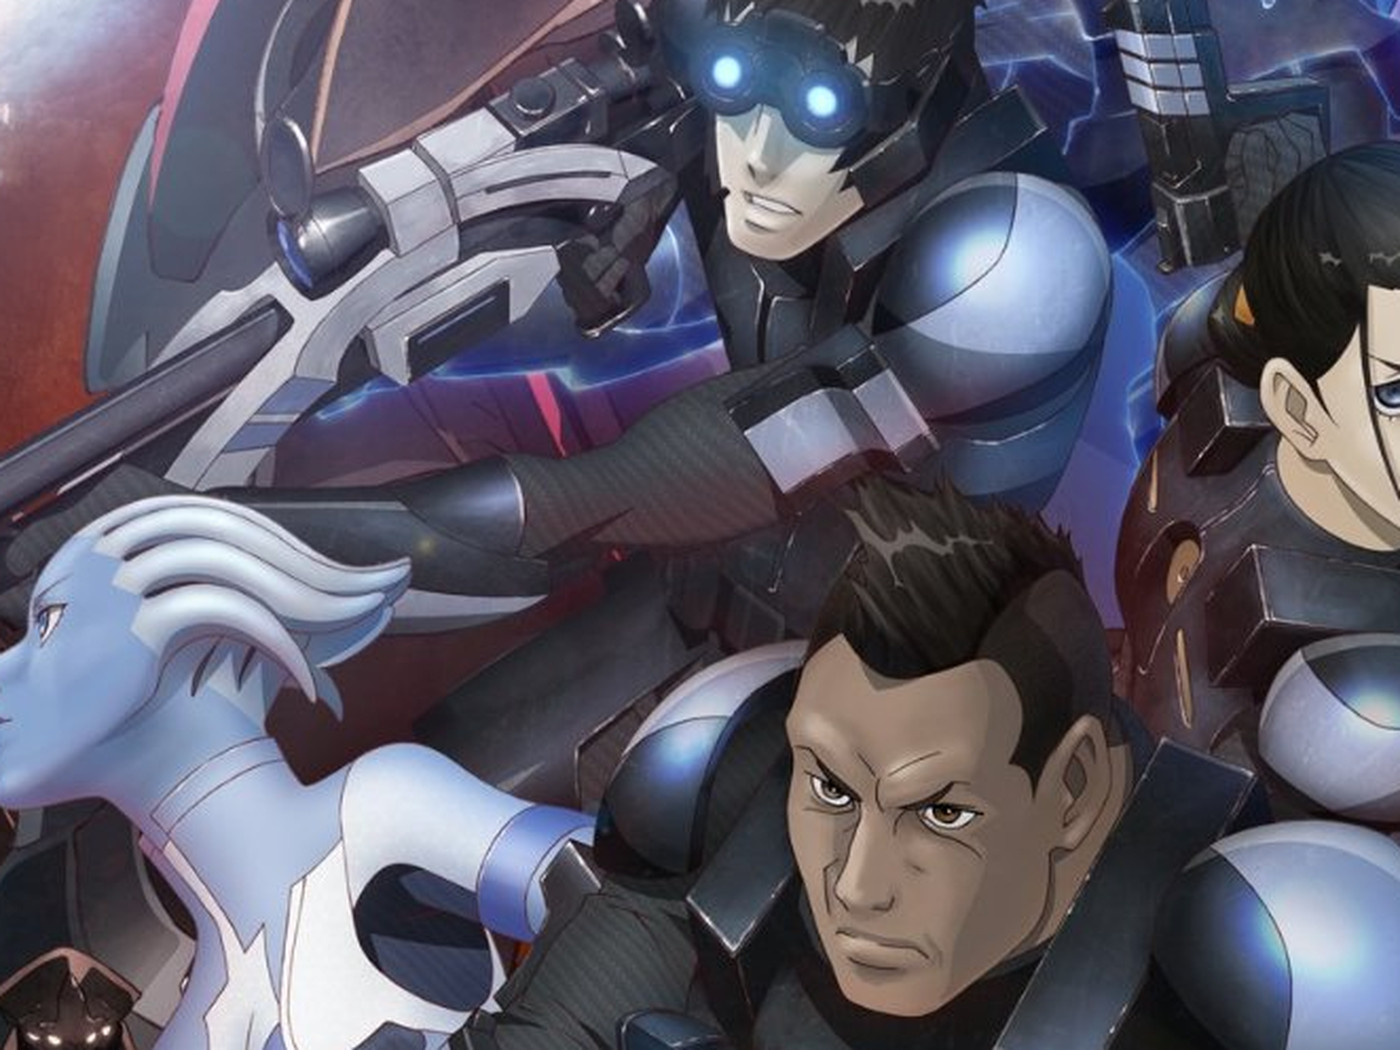 Mass Effect 3 Anime Delayed To December 28th Polygon